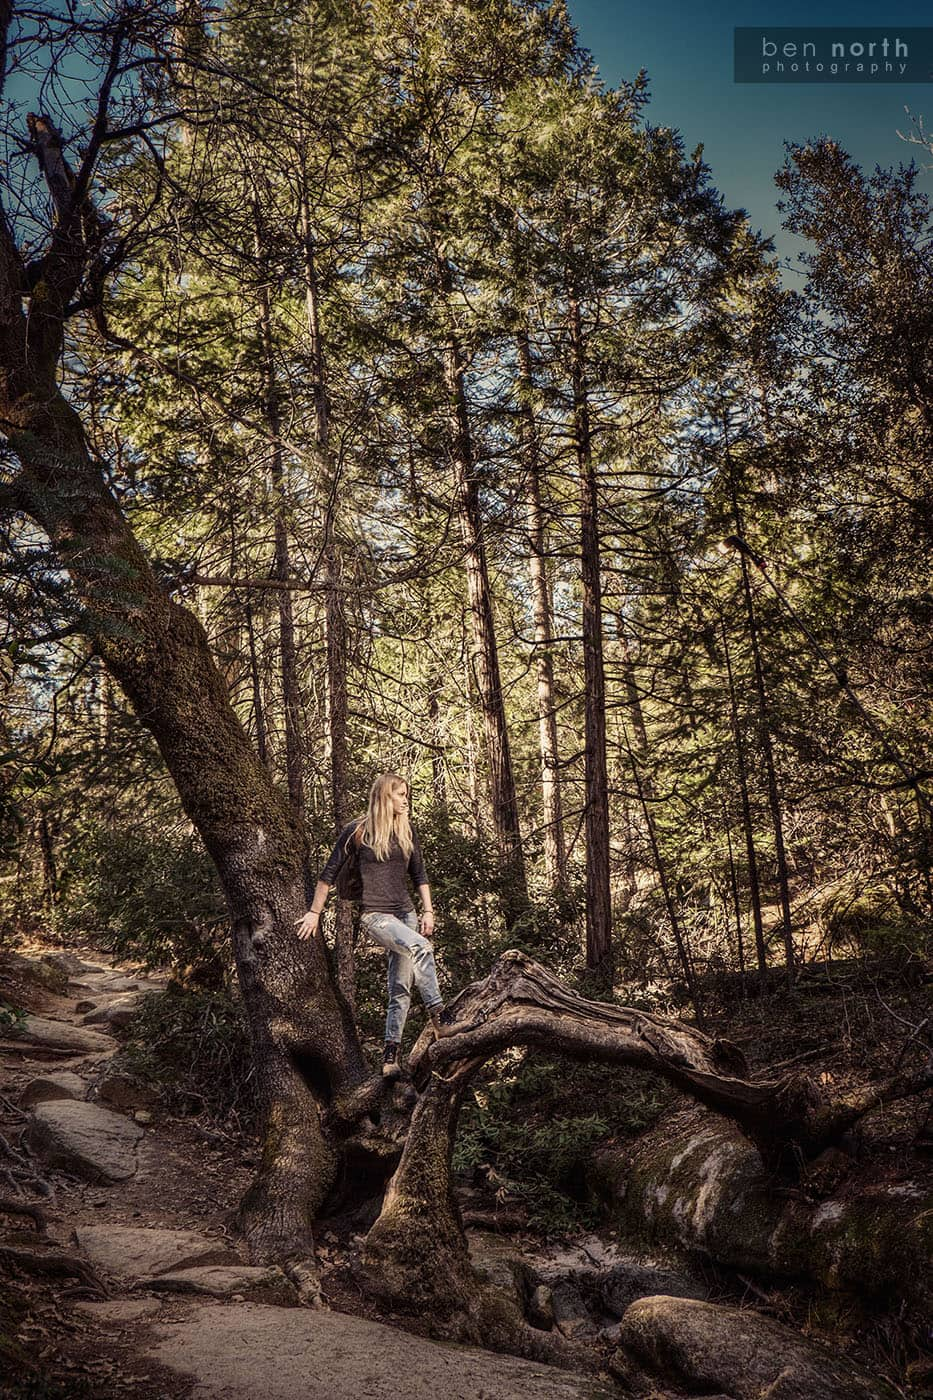 Outdoor Lifestyle Photography - Backpacking on Bald Rock